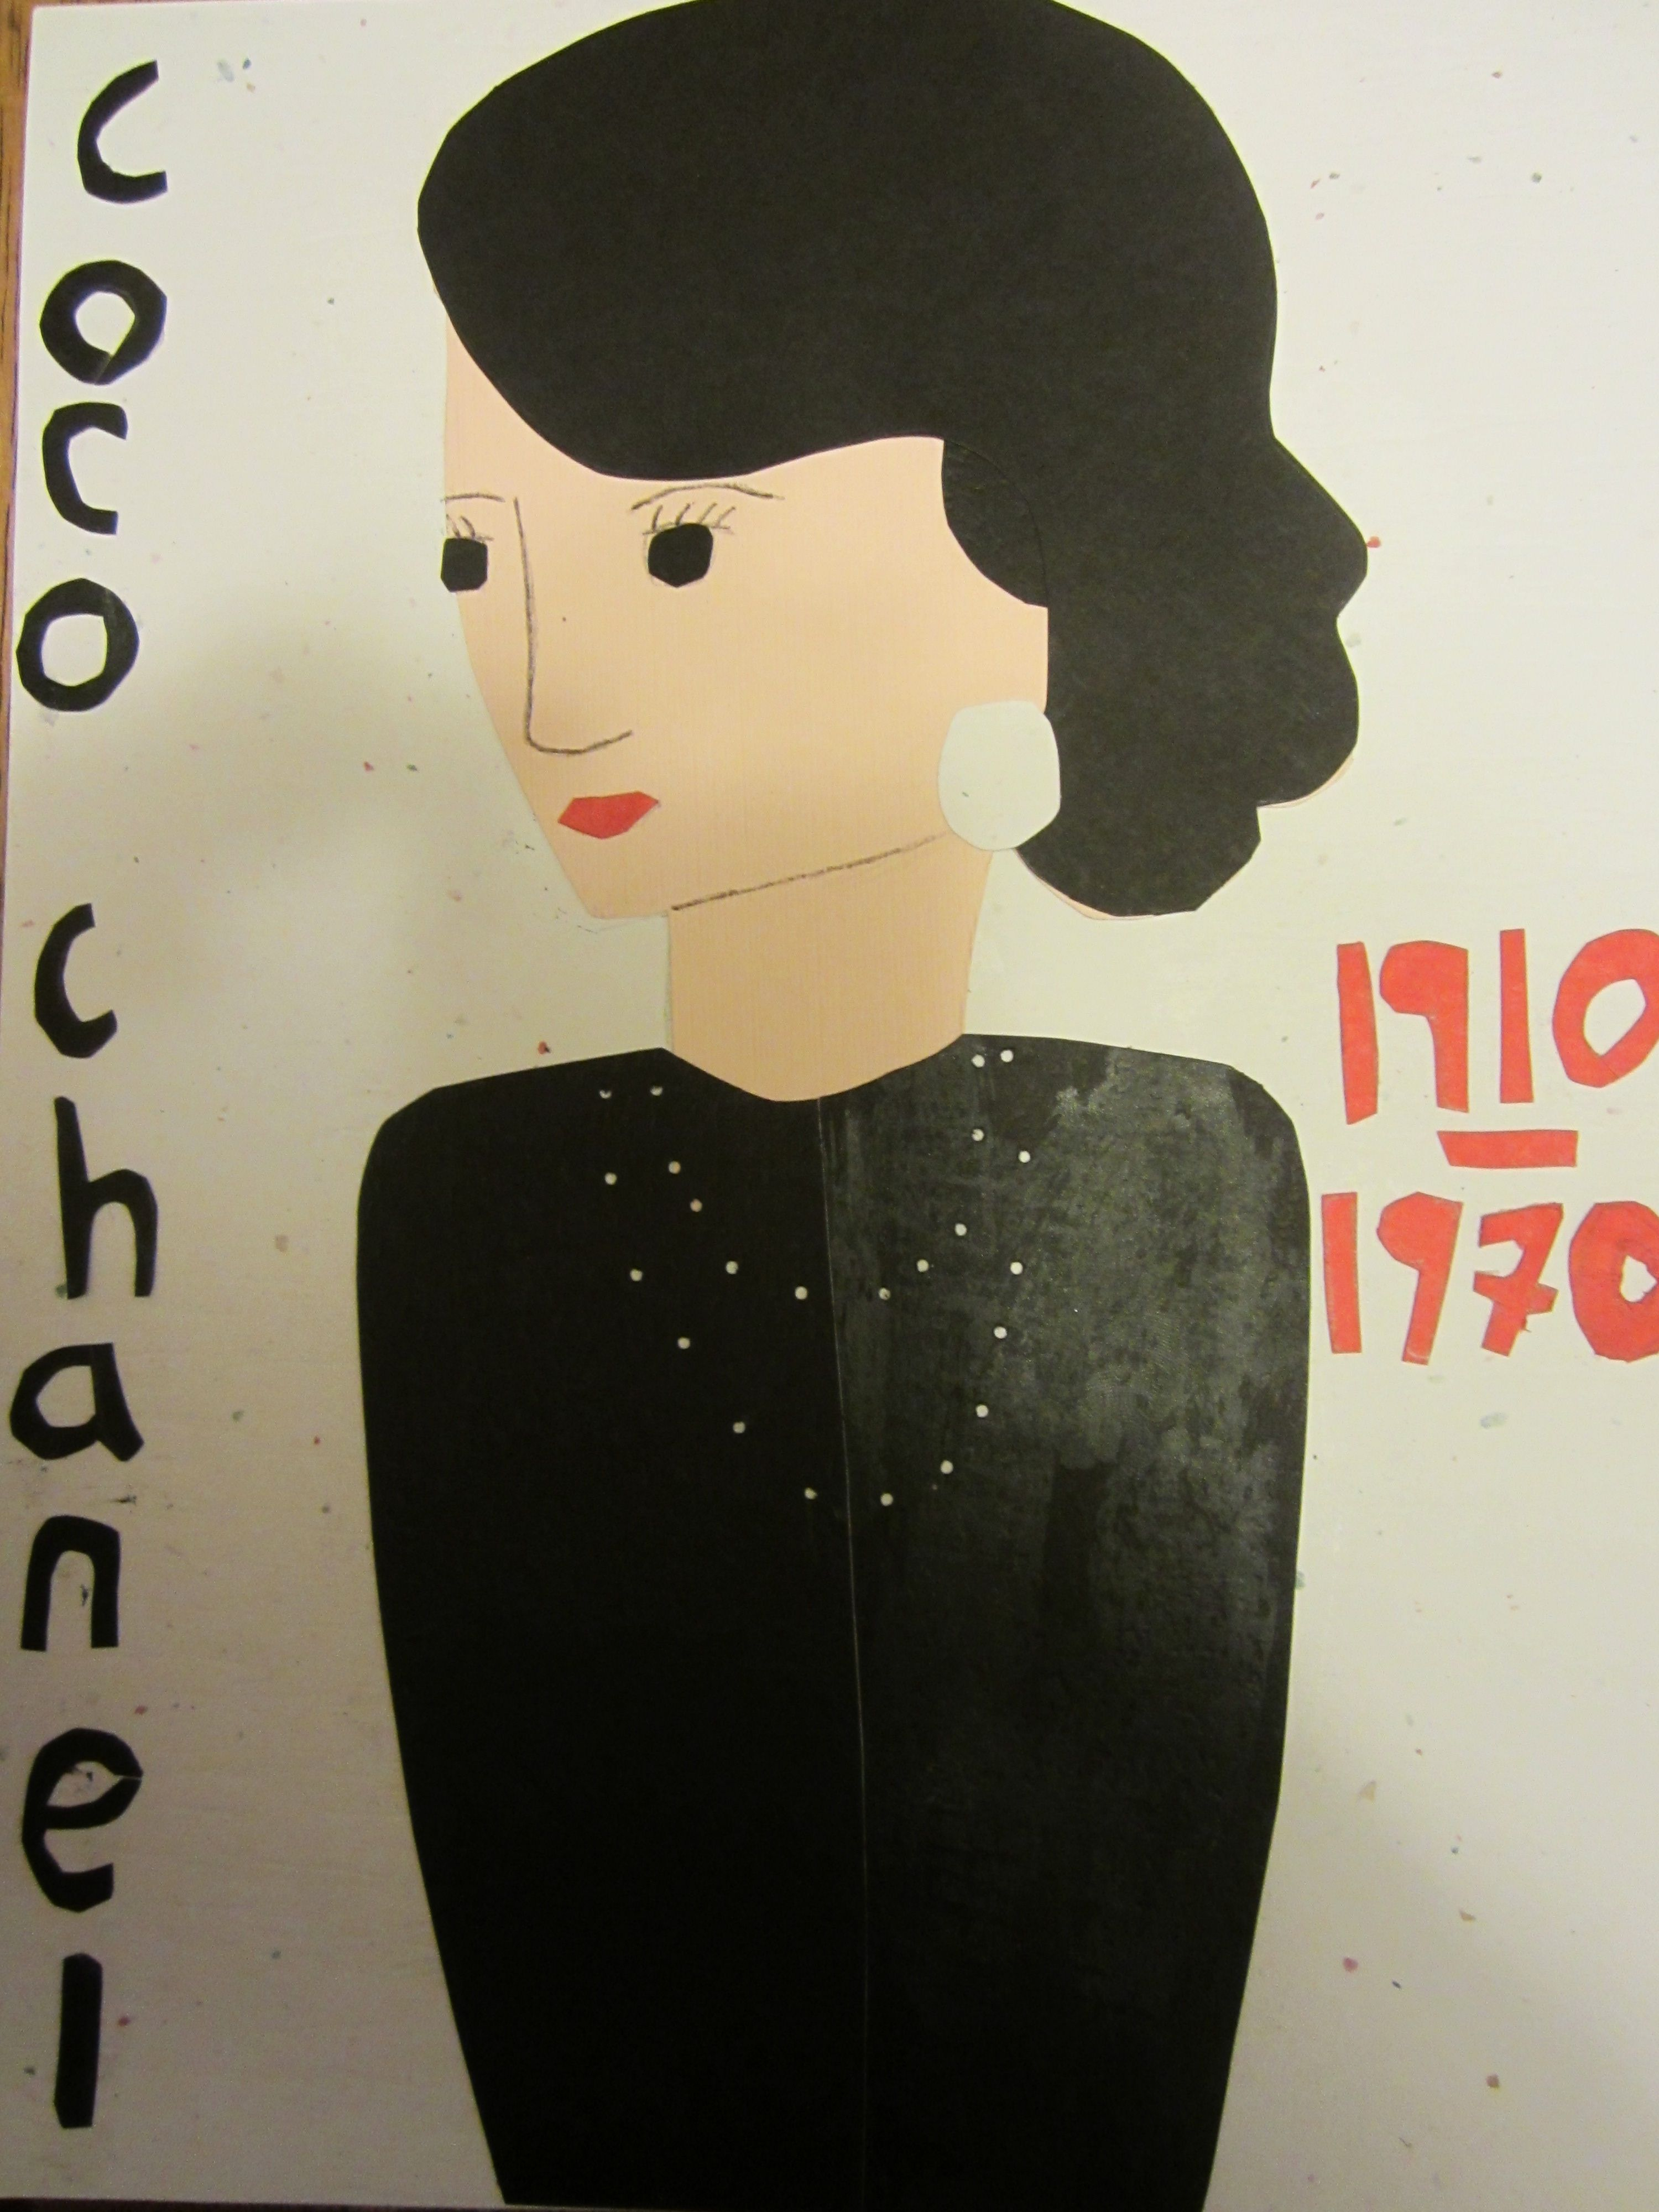 Image 2 Coco Chanel Famous Fashion Designer Of Simple Clothing Fashion Designers Famous Fashion Design Famous Fashion